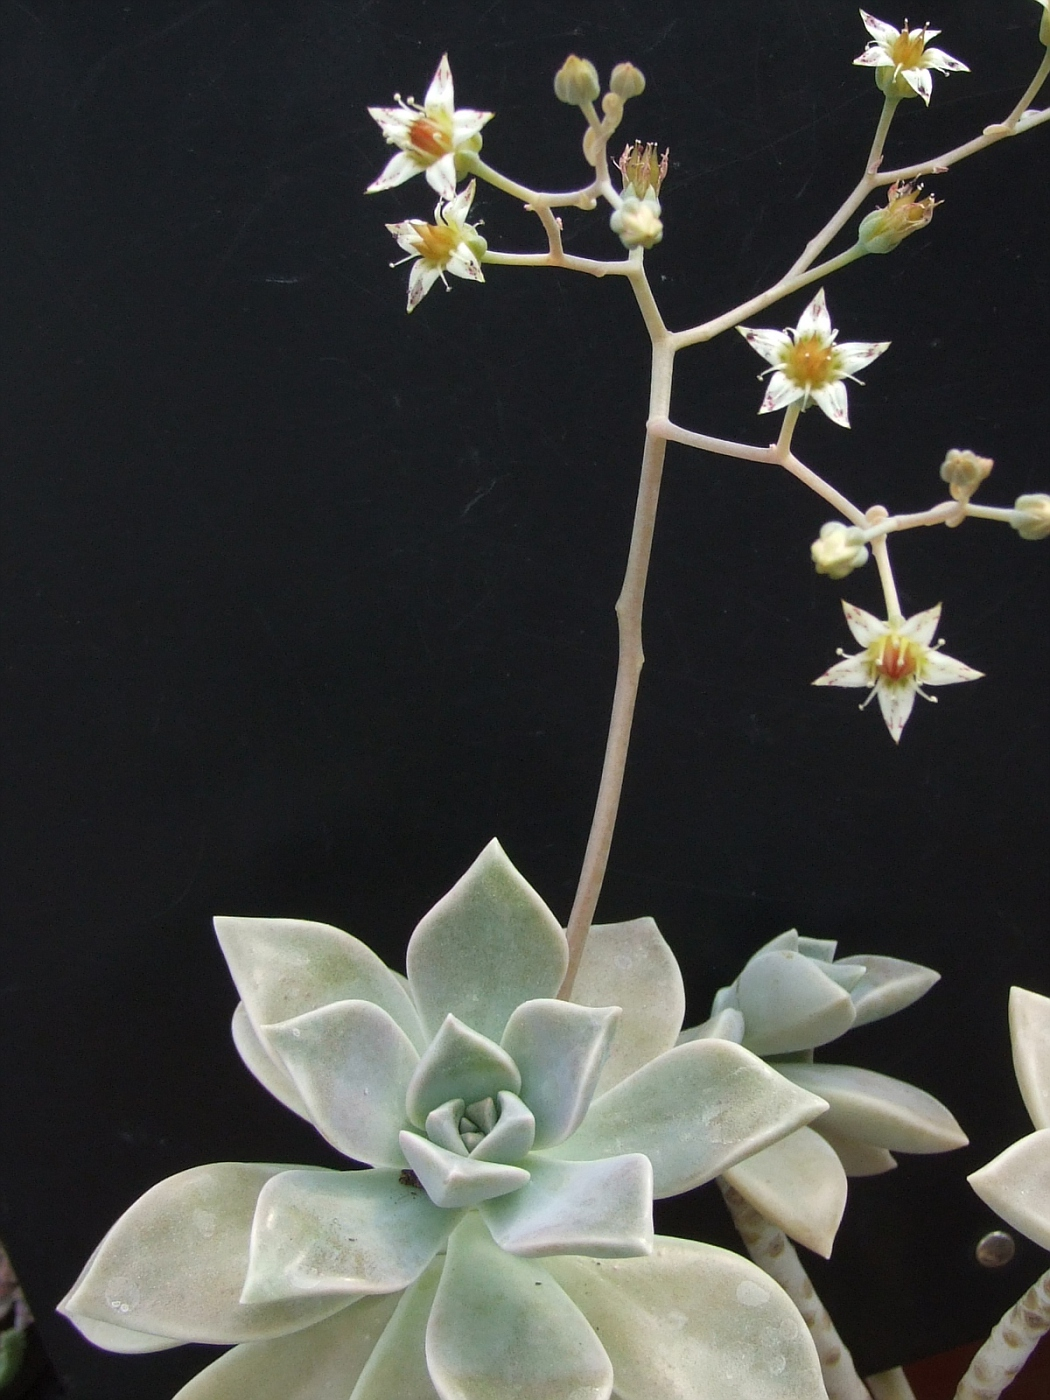 Graptopetalum paraquensis